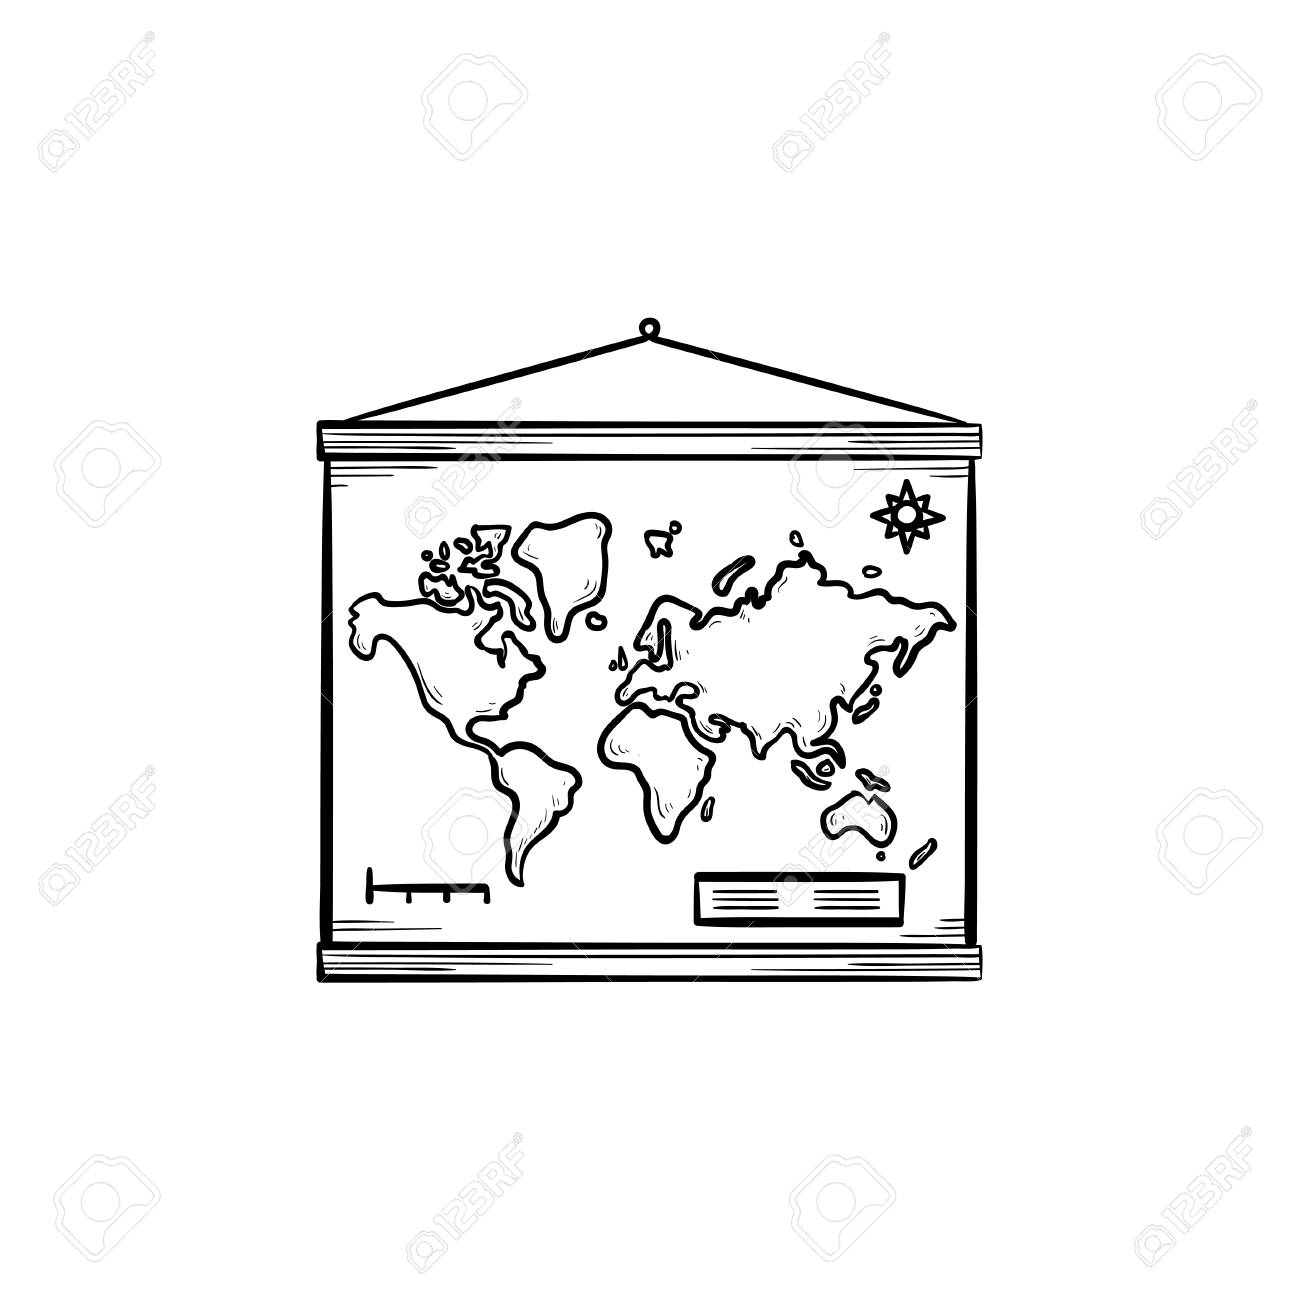 World Map Hanging On The Wall Hand Drawn Outline Doodle Icon ...